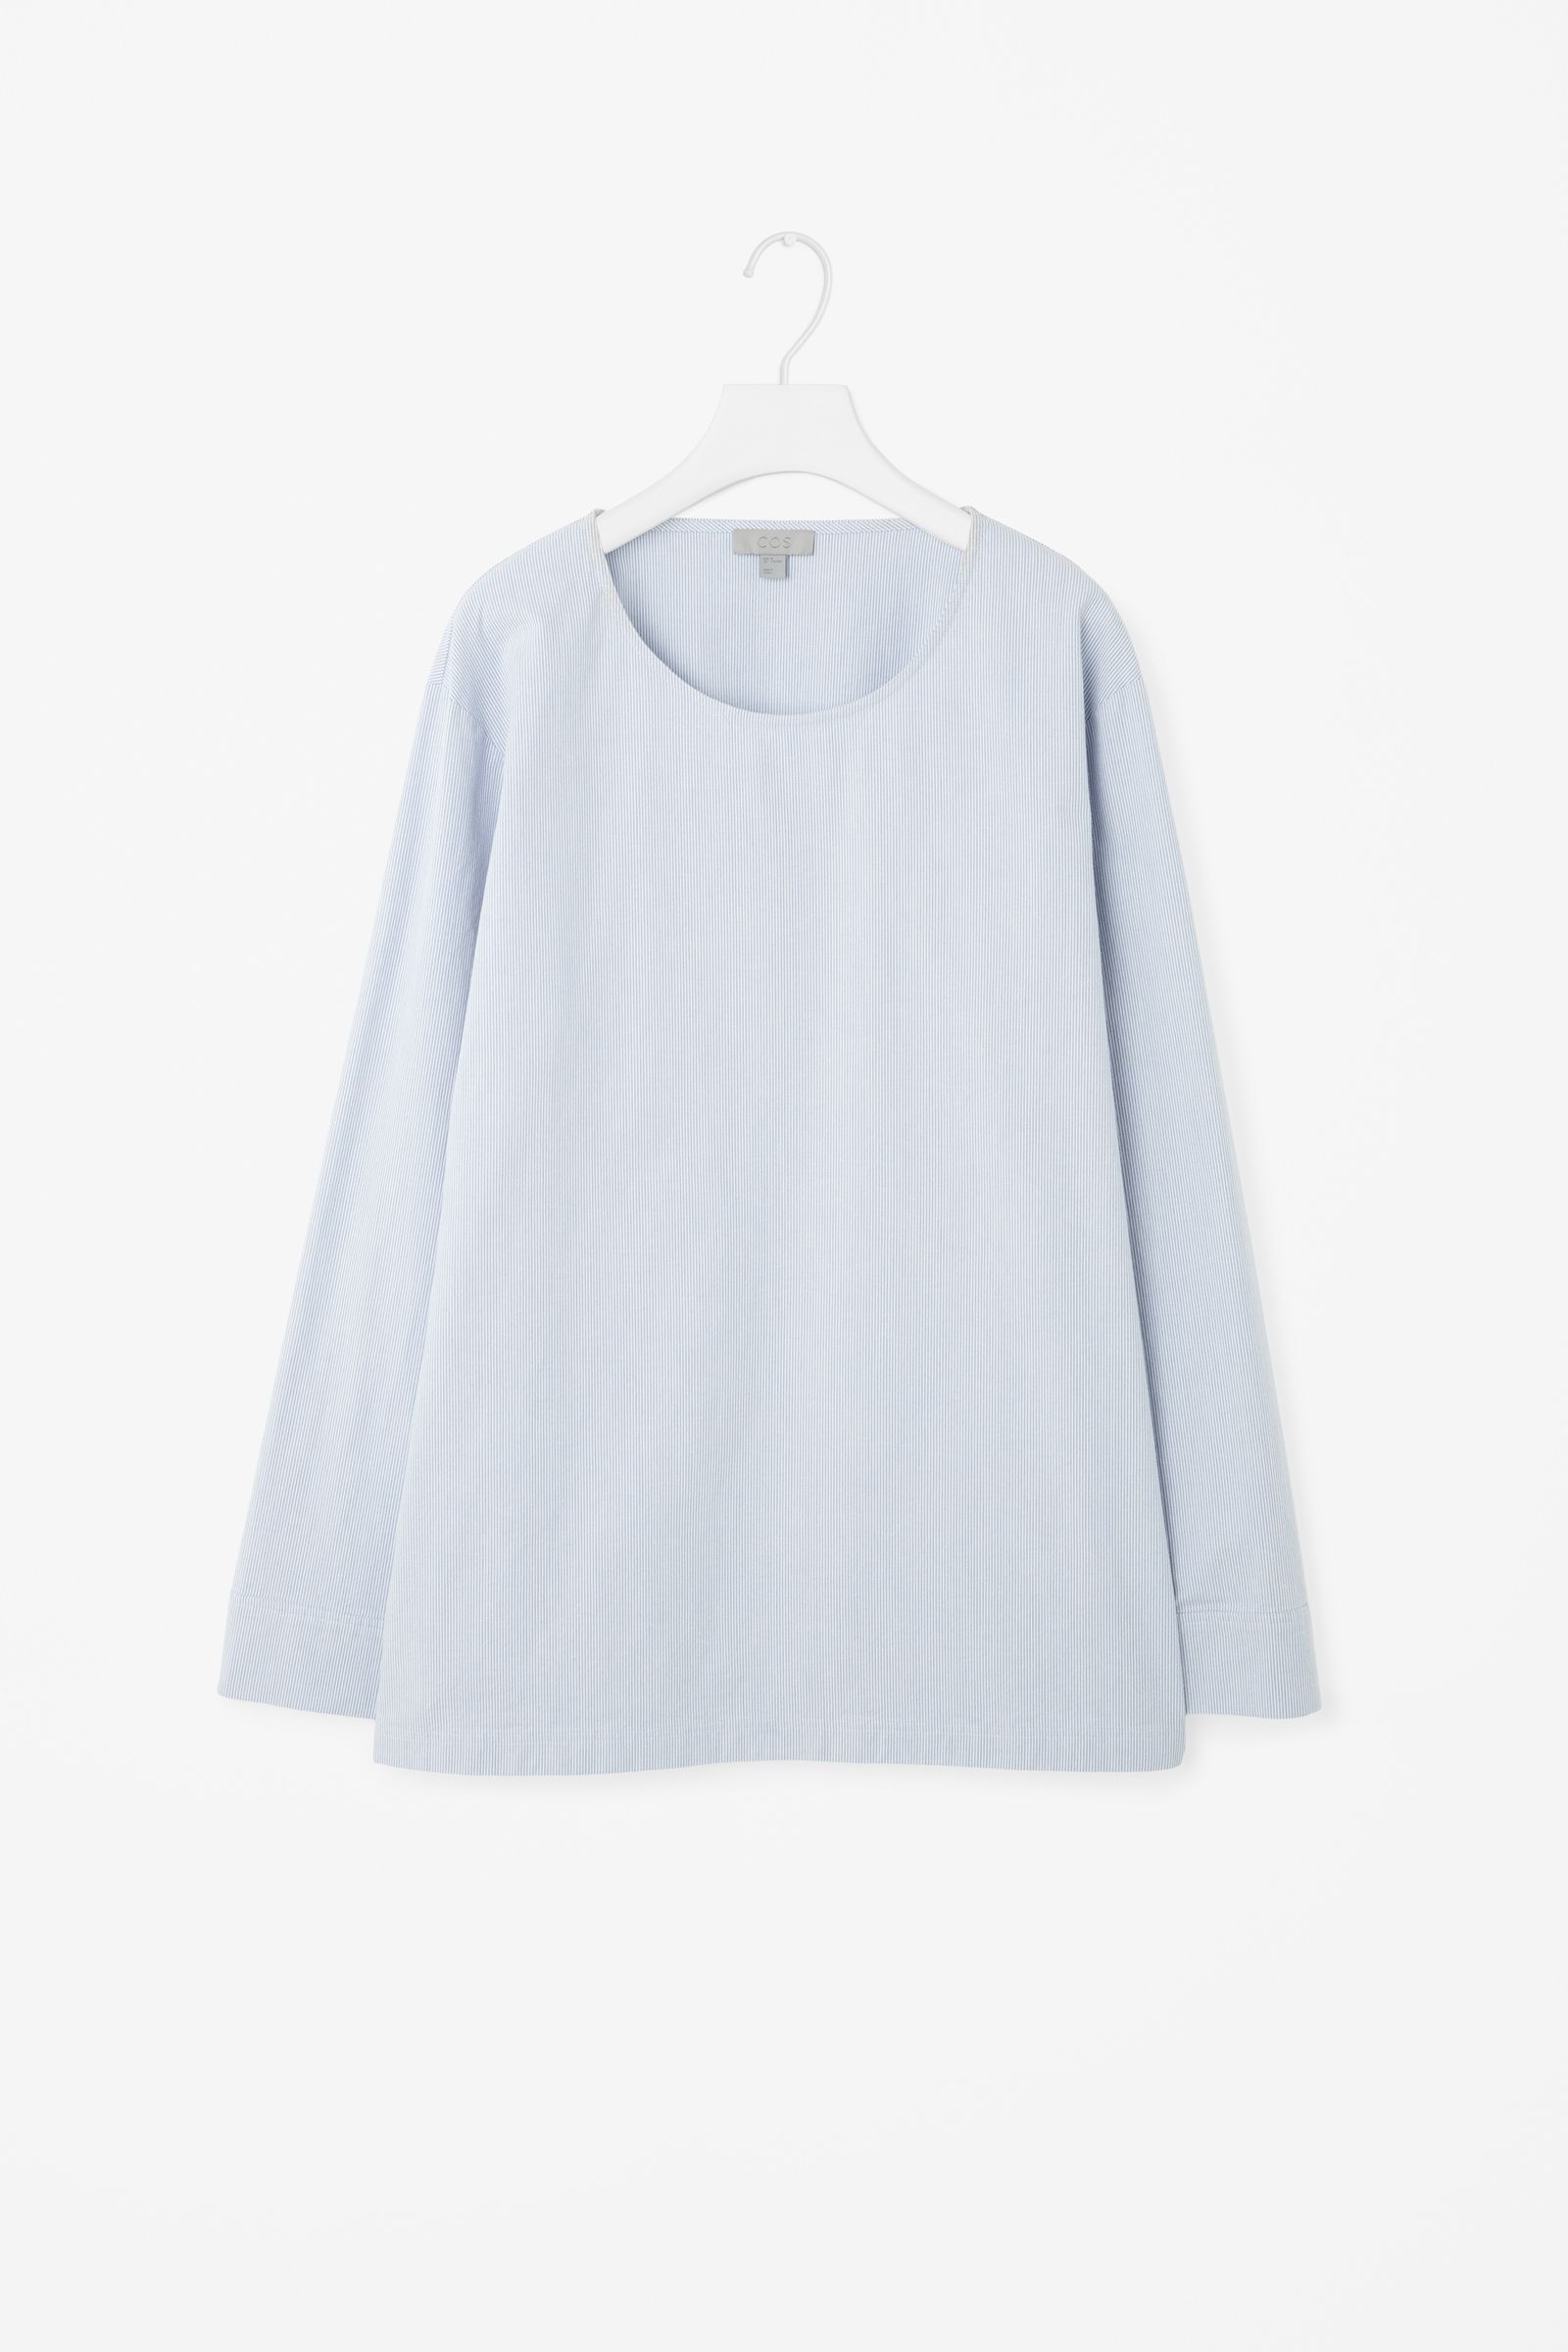 COS | Oversized cotton top